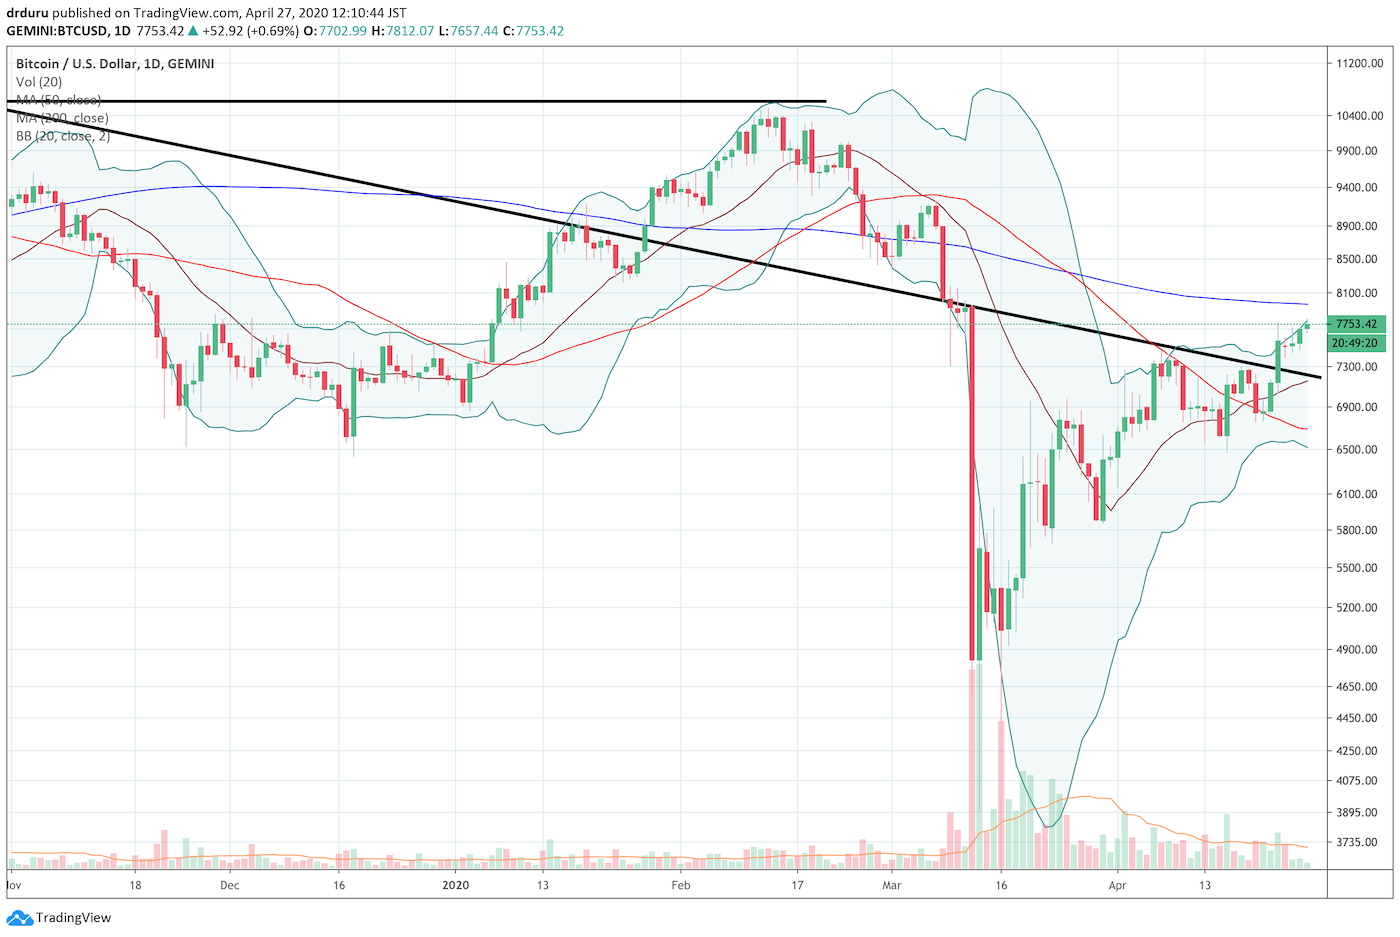 Bitcoin (BTC/USD) is slowly but surely applying upward price pressure into a potentially important test of 200DMA resistance.